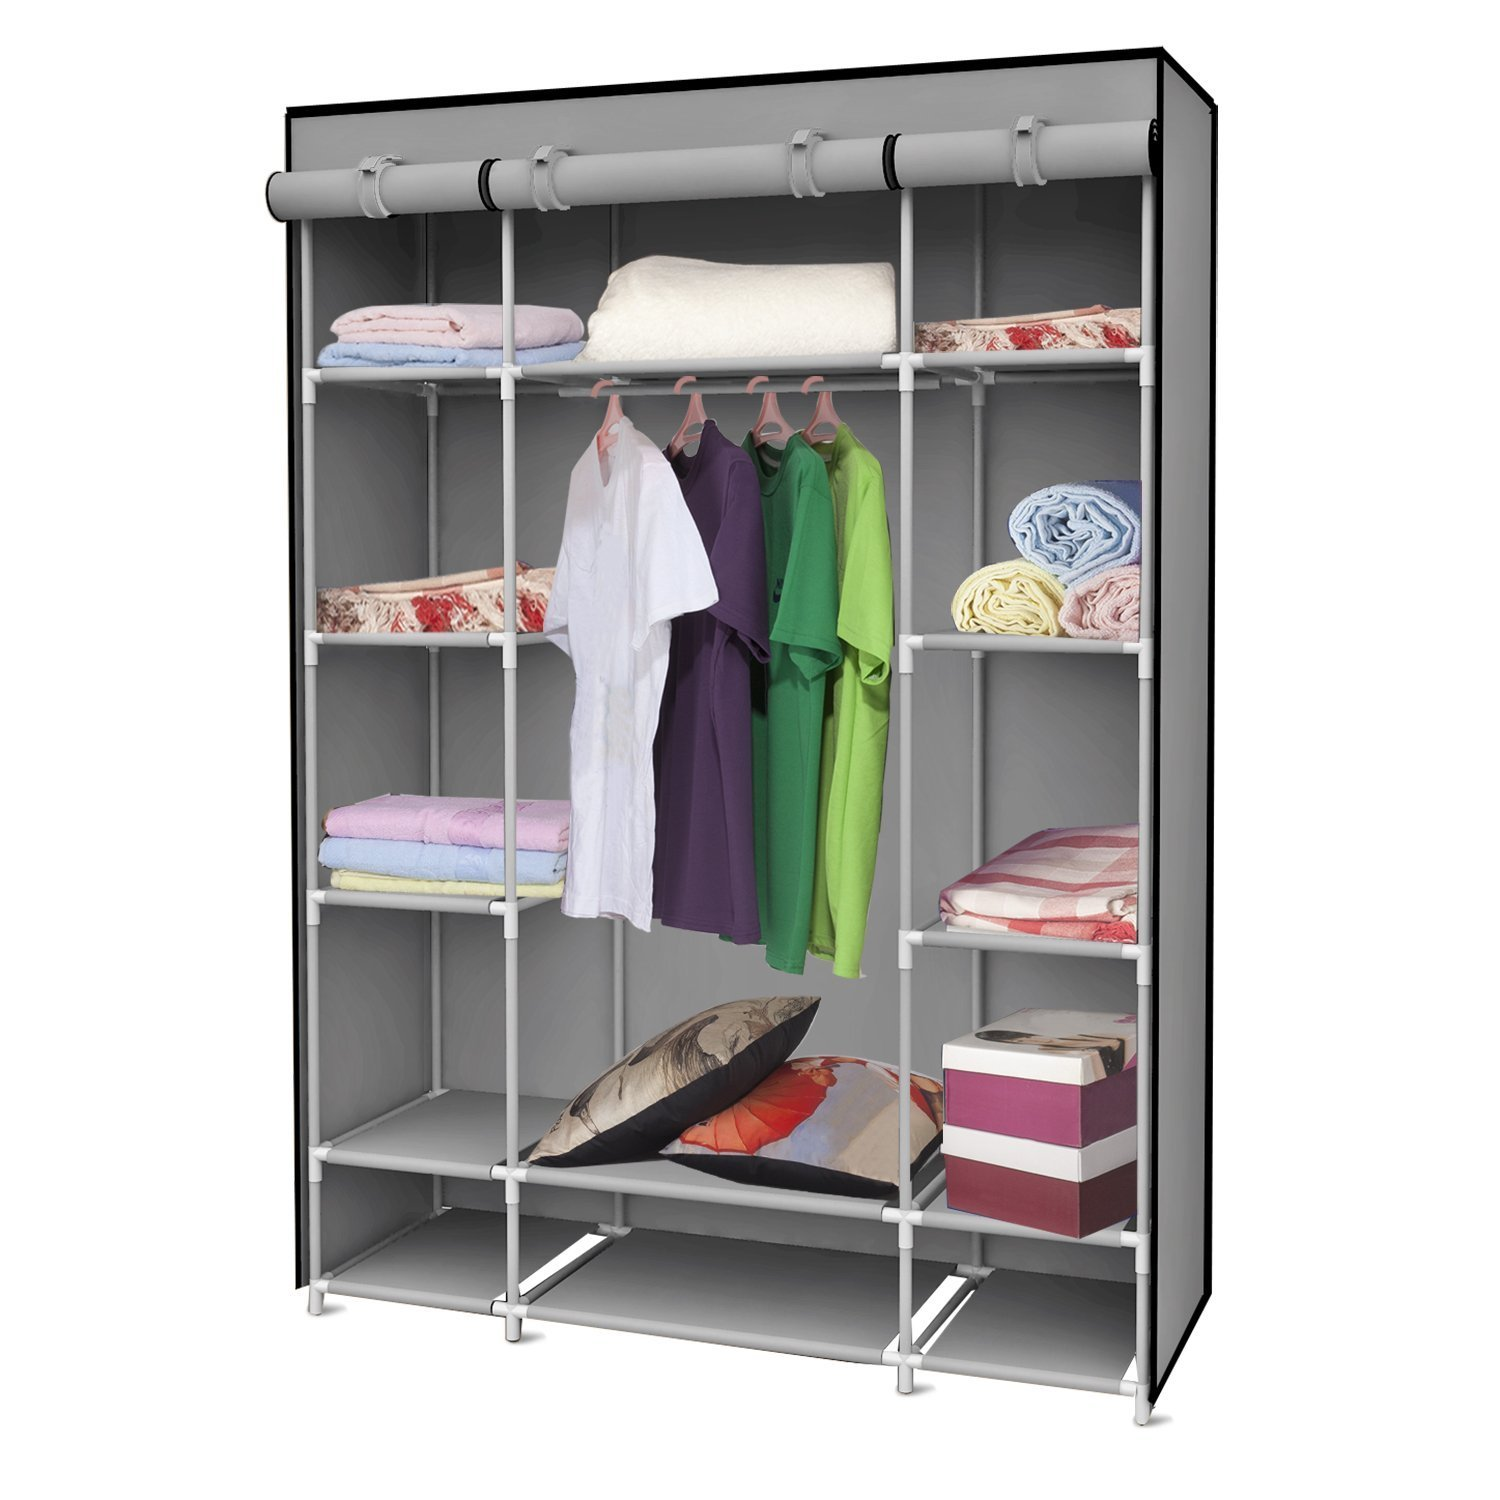 systems storage city bamboo bath organization closet oahu organizers hawaii s accessories superhardware store favorite dateline departments mill